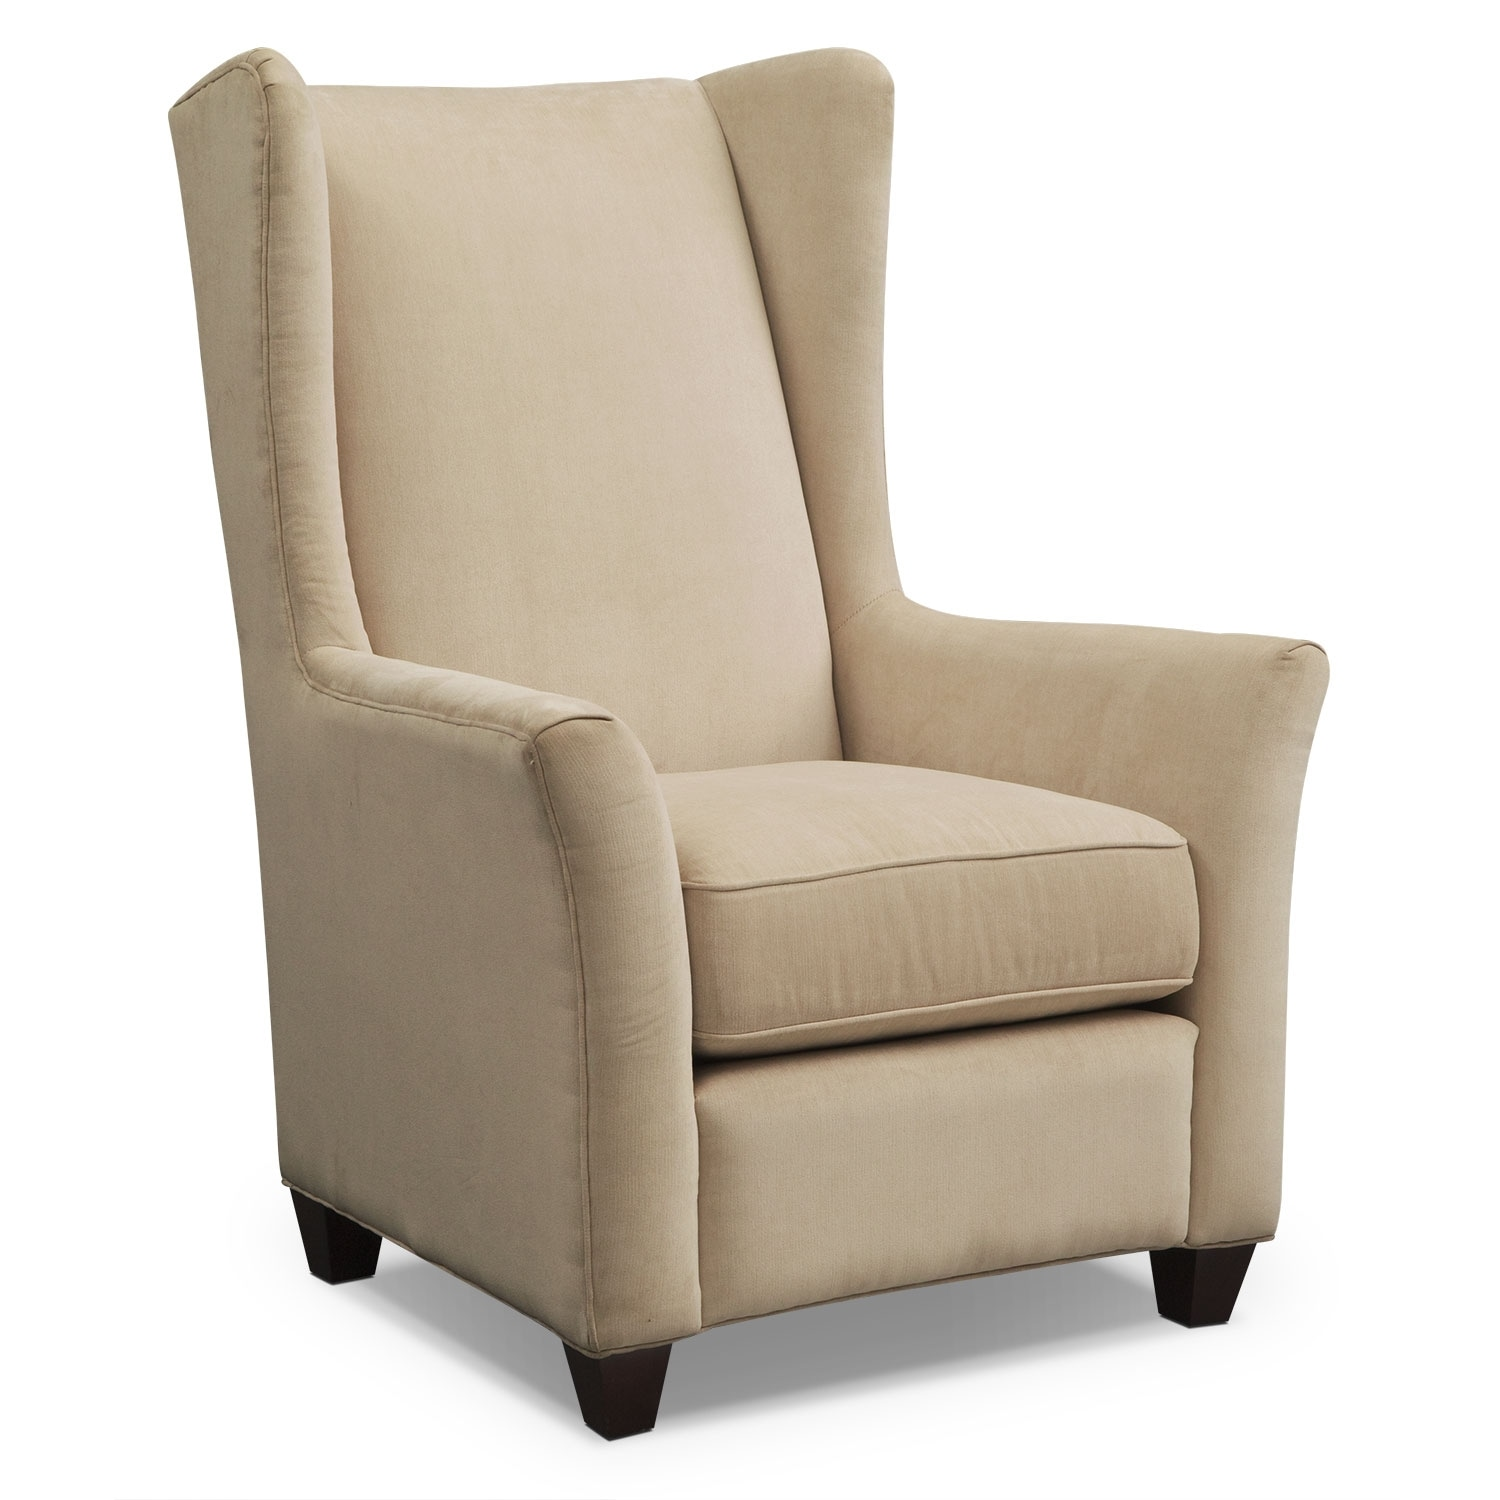 Ivory Living Room Furniture: Corrine Accent Chair - Ivory